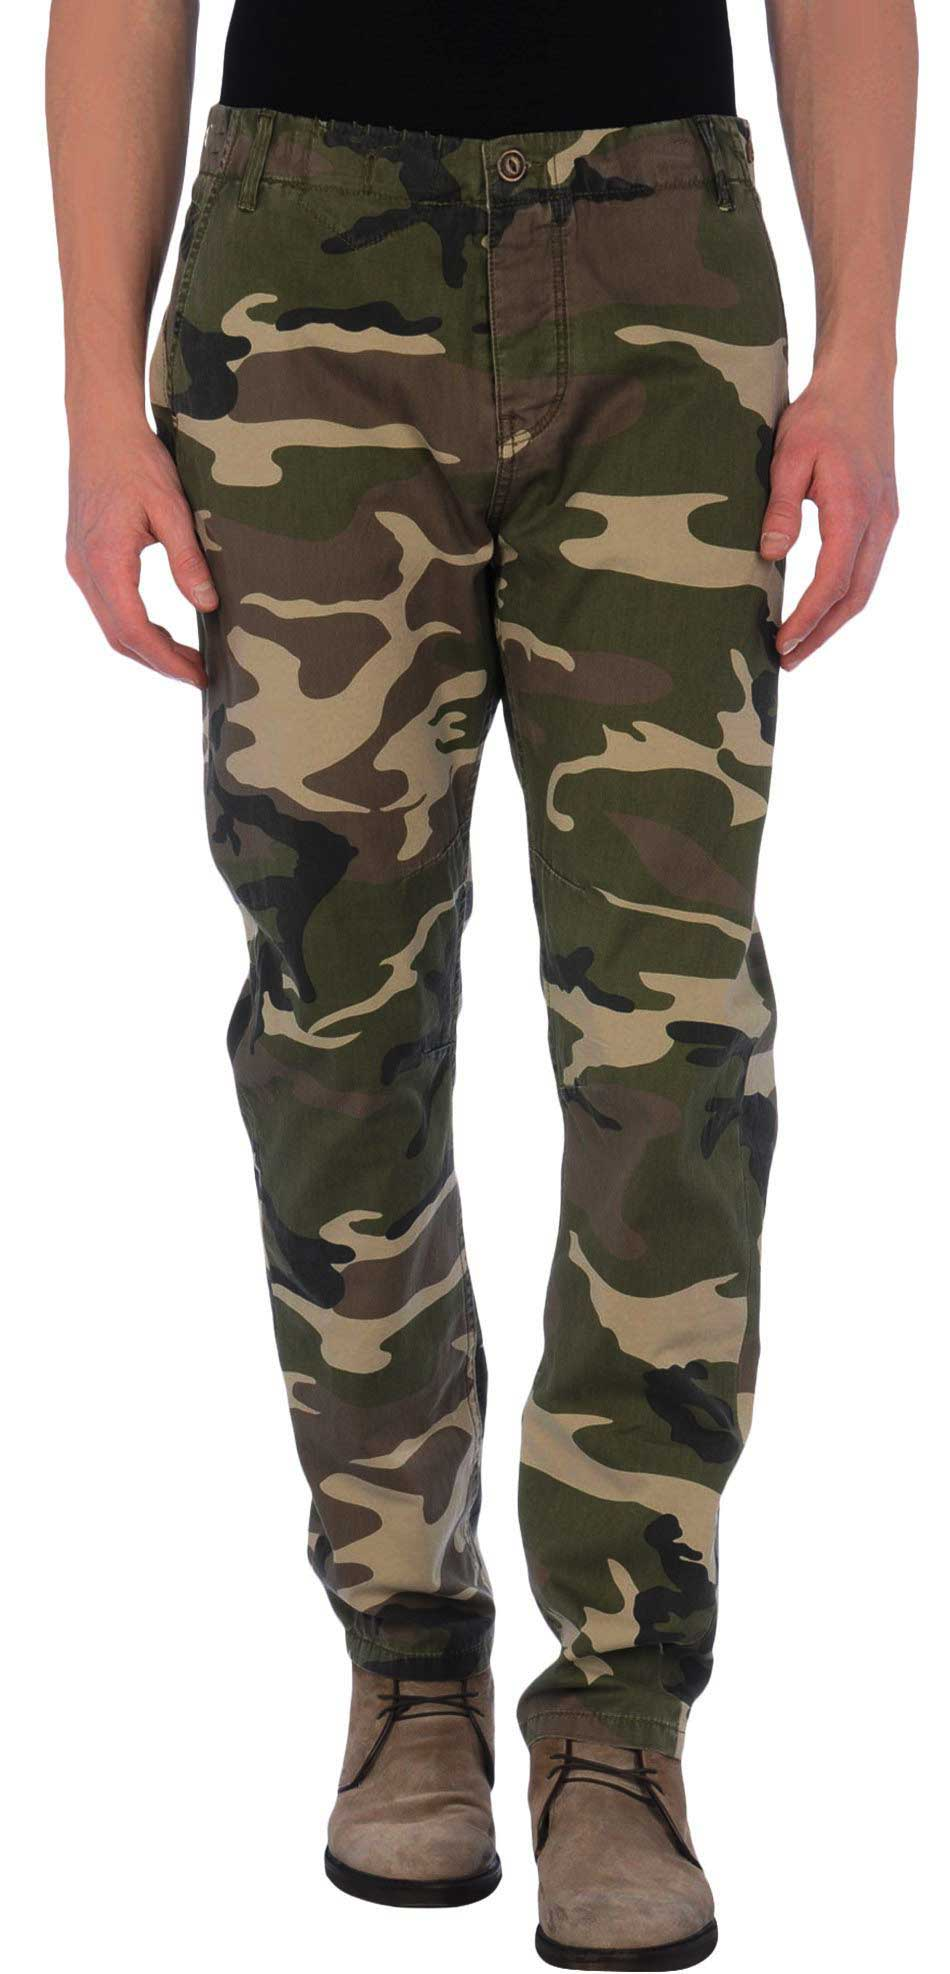 Camouflage Pants camouflage pants NBXXRFP